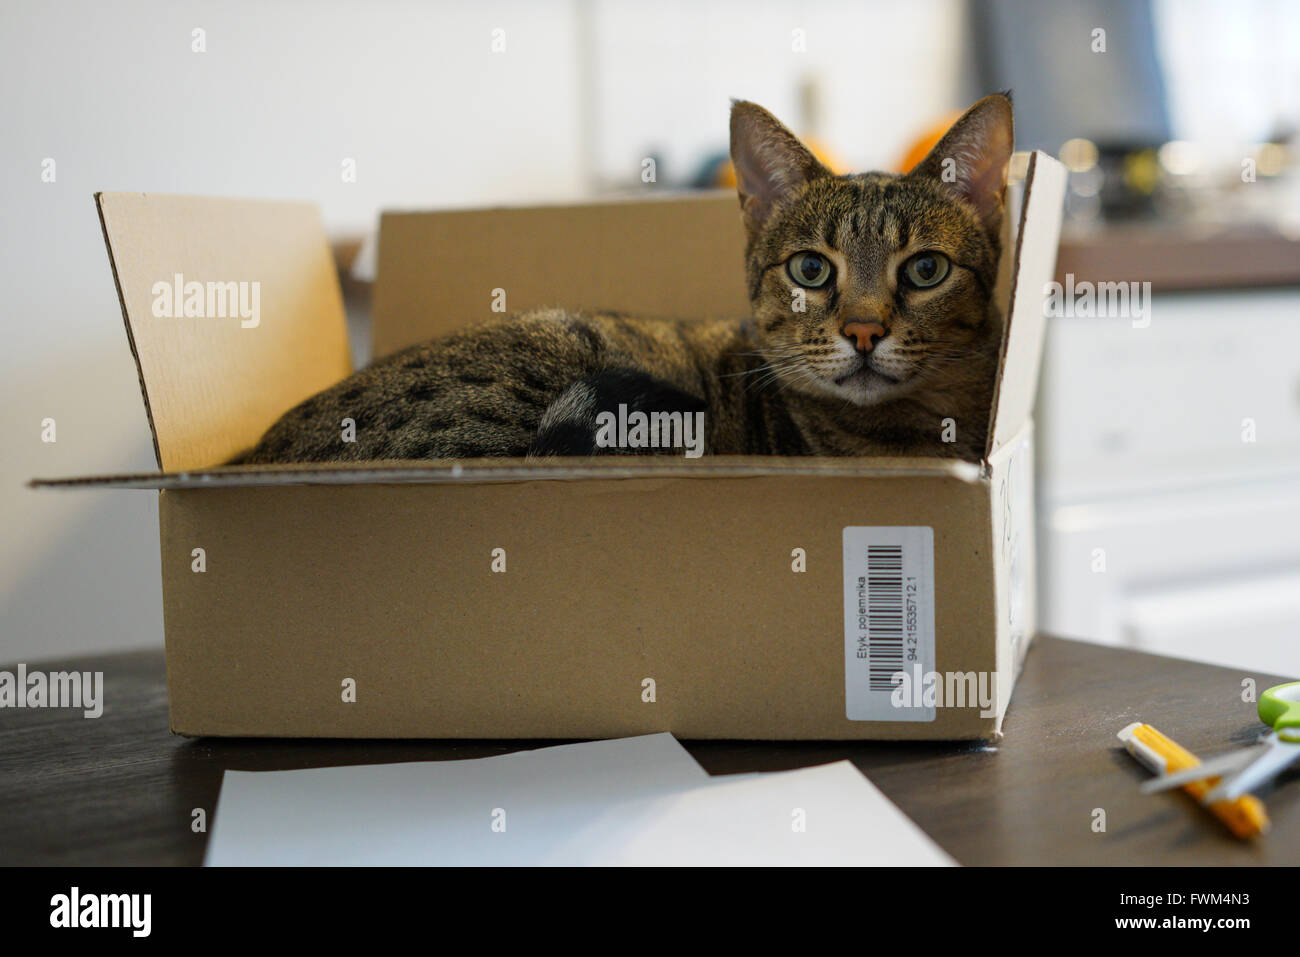 Portrait Of Cat In Cardboard Box On Table - Stock Image